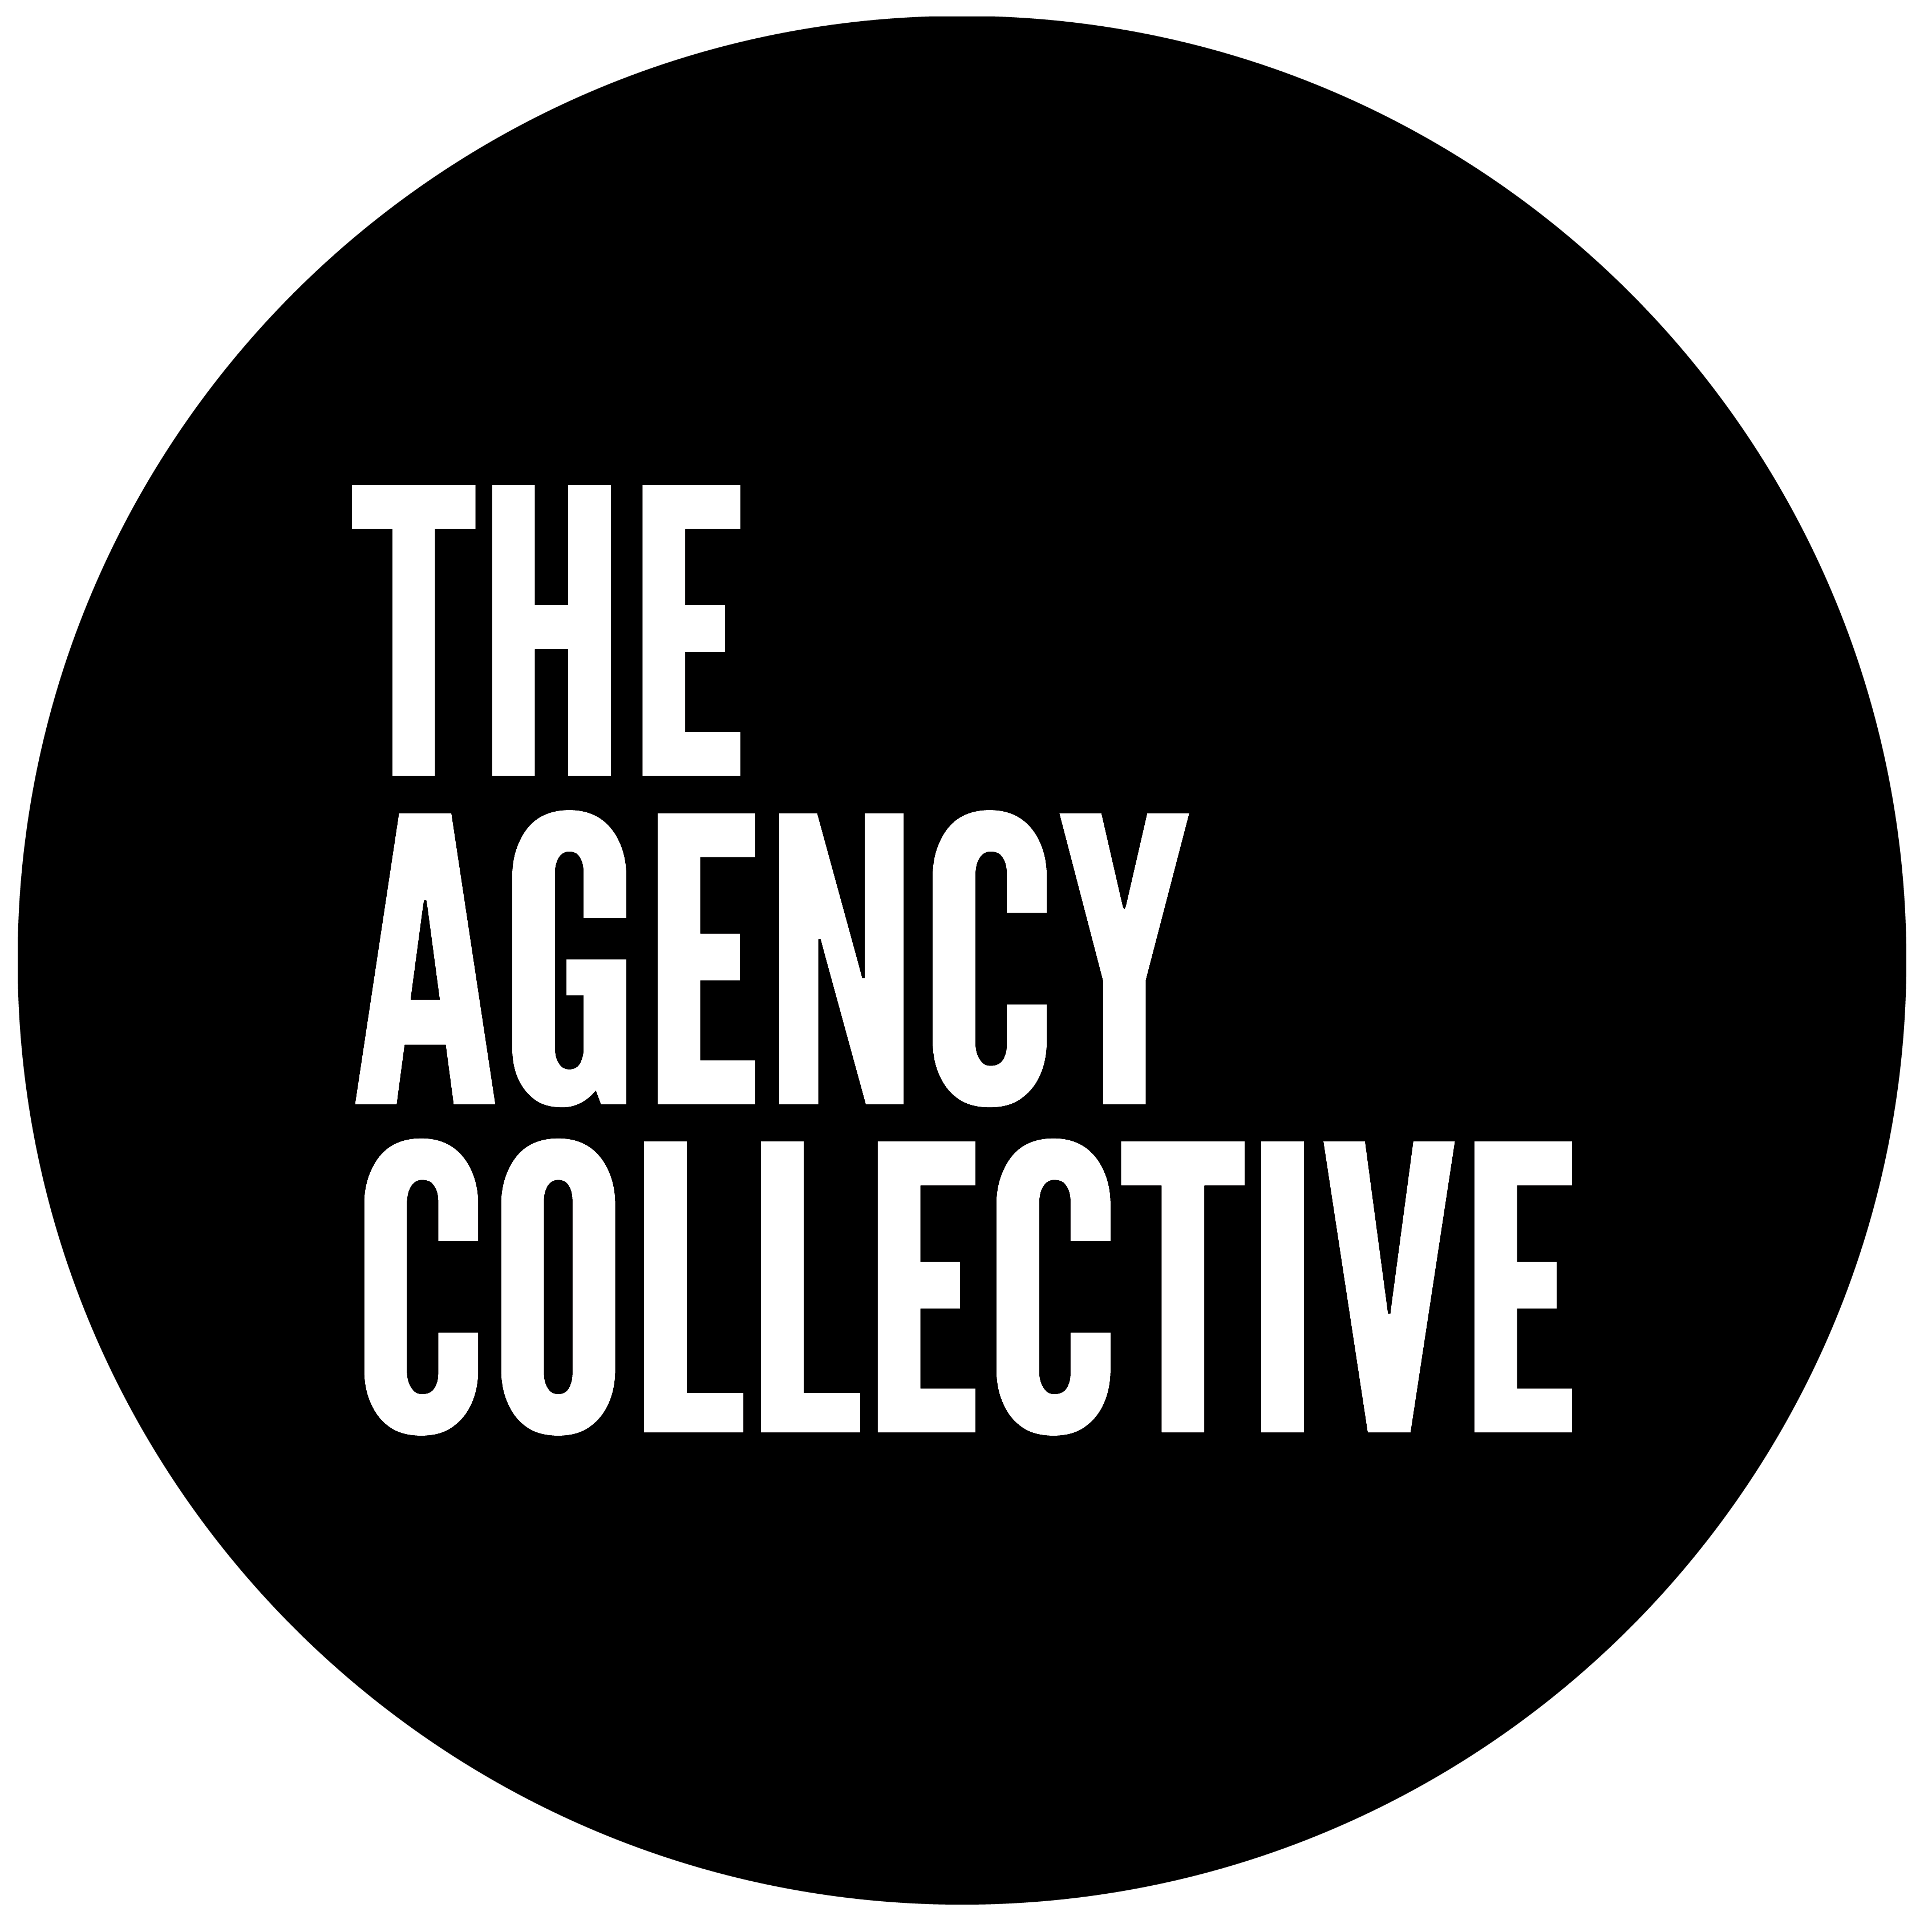 agency-collective-logo-black (1)